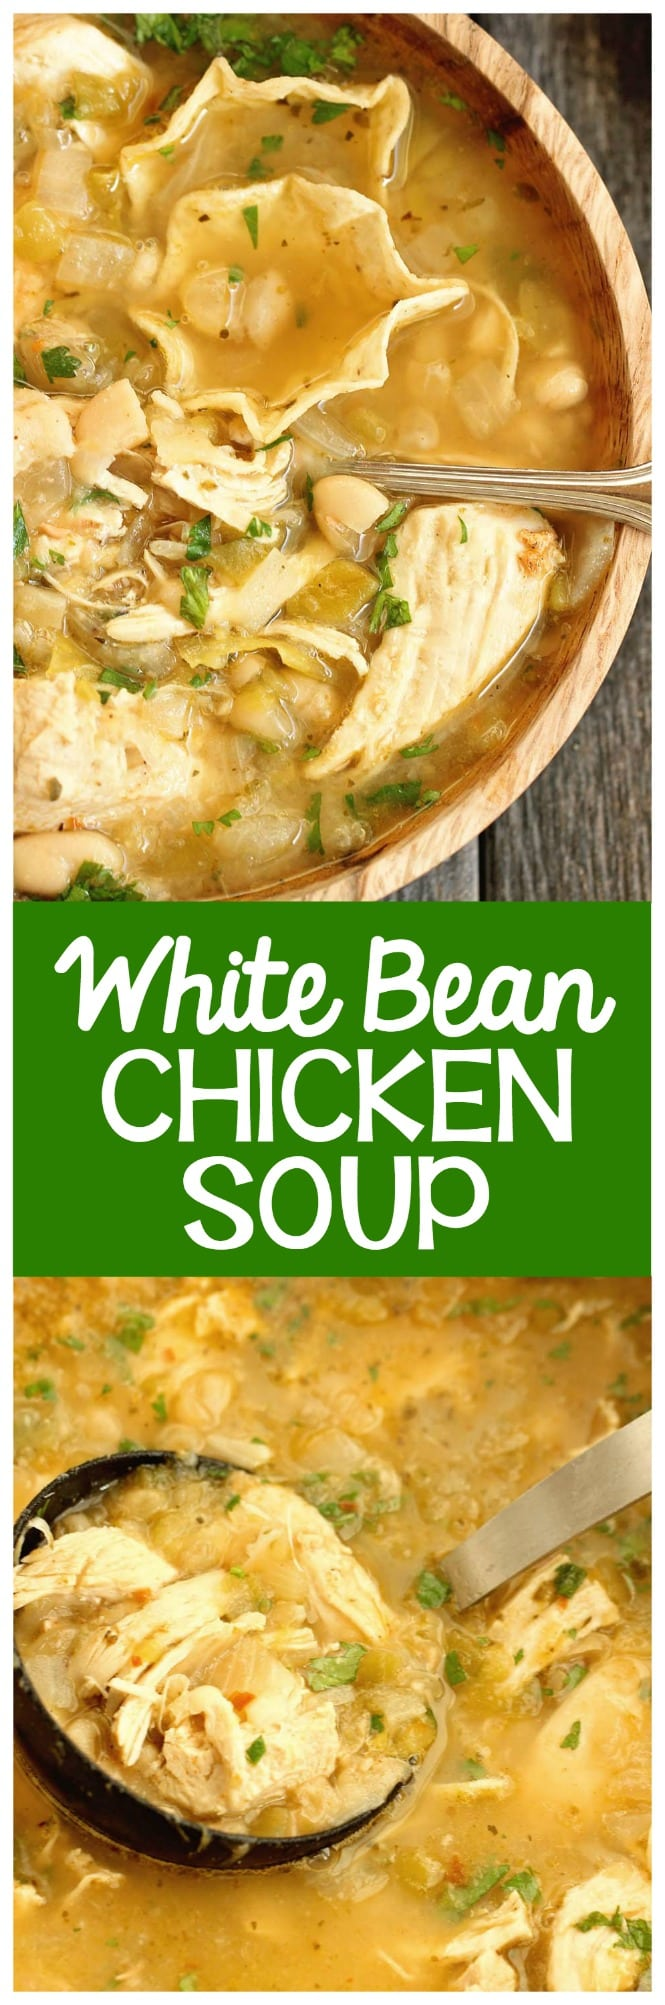 White Bean Chicken Soup - A healthy comforting soup recipe filled with chicken, Great Northern beans, green chiles, and tons of flavor!  It's a great recipe for dinner and for make-ahead lunches for the week! Plus, it's low-carb and only 2 freestyle points!